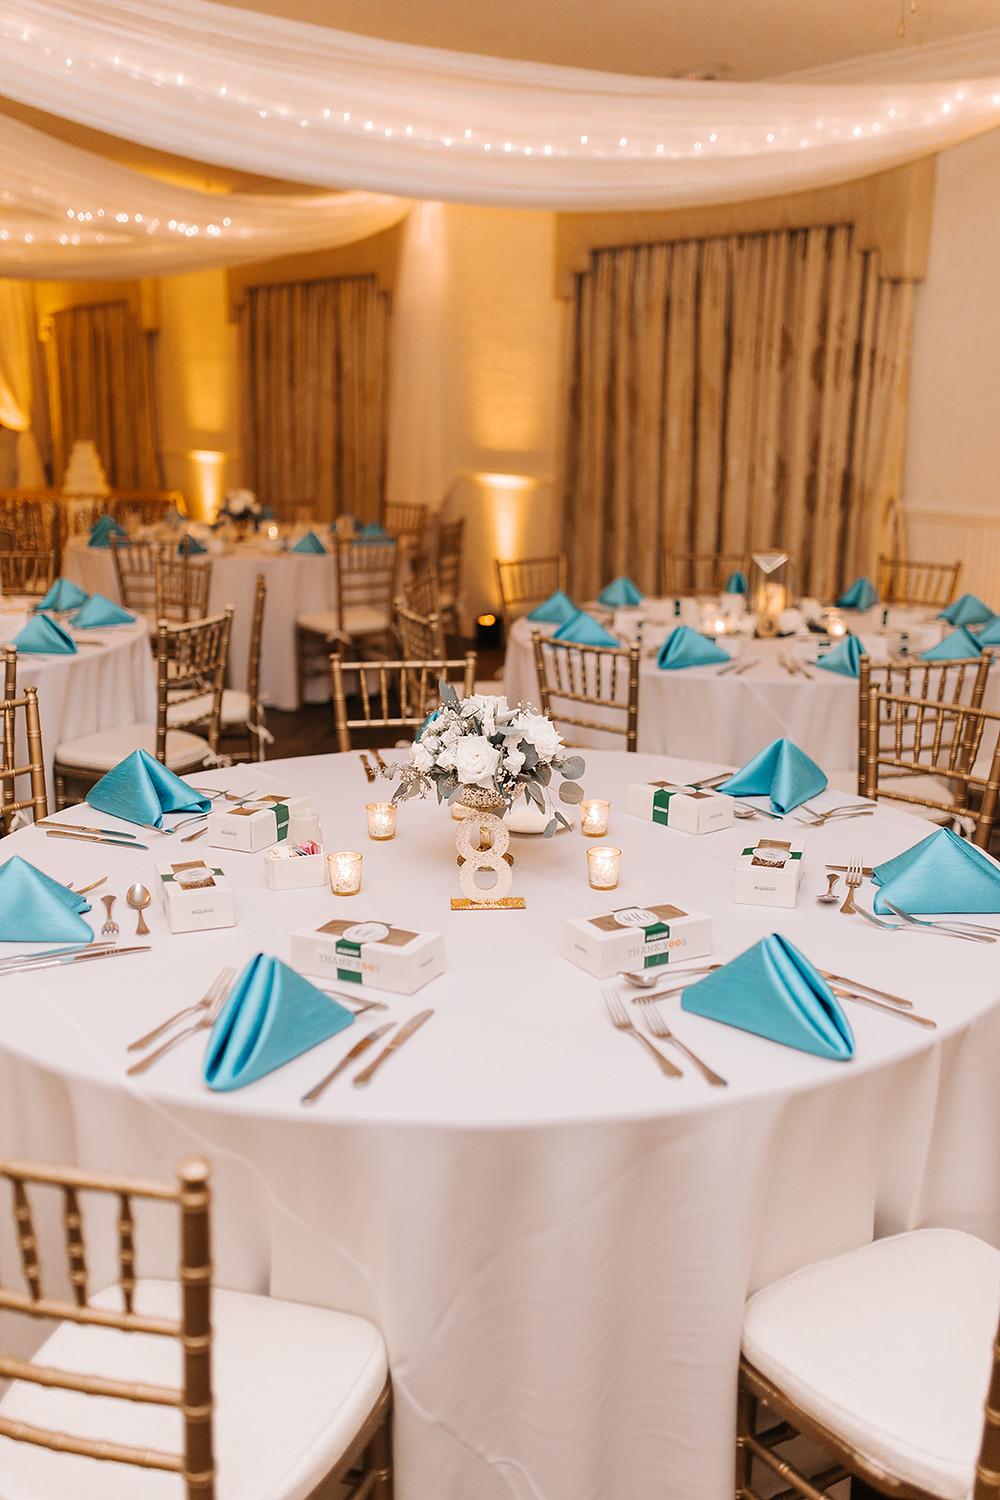 Wedding table decor with turquoise napkin and donut favors